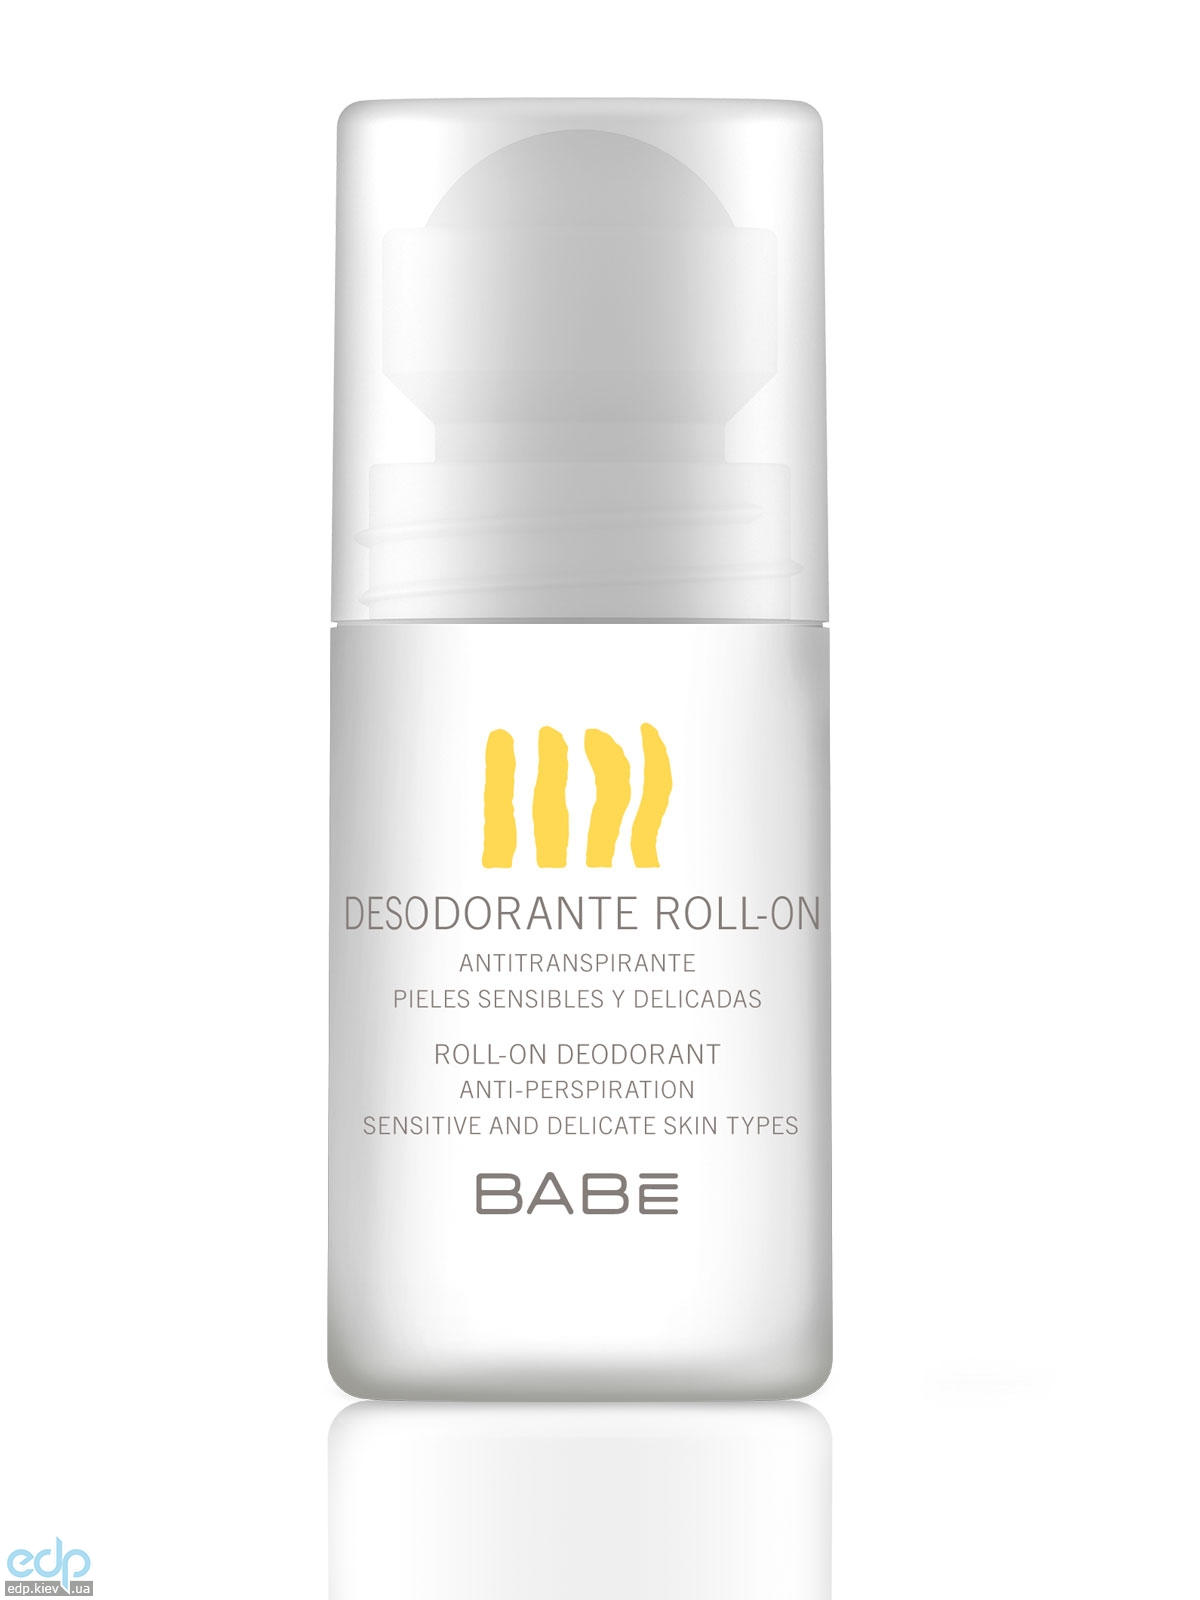 Дезодоранты Babe Laboratorios